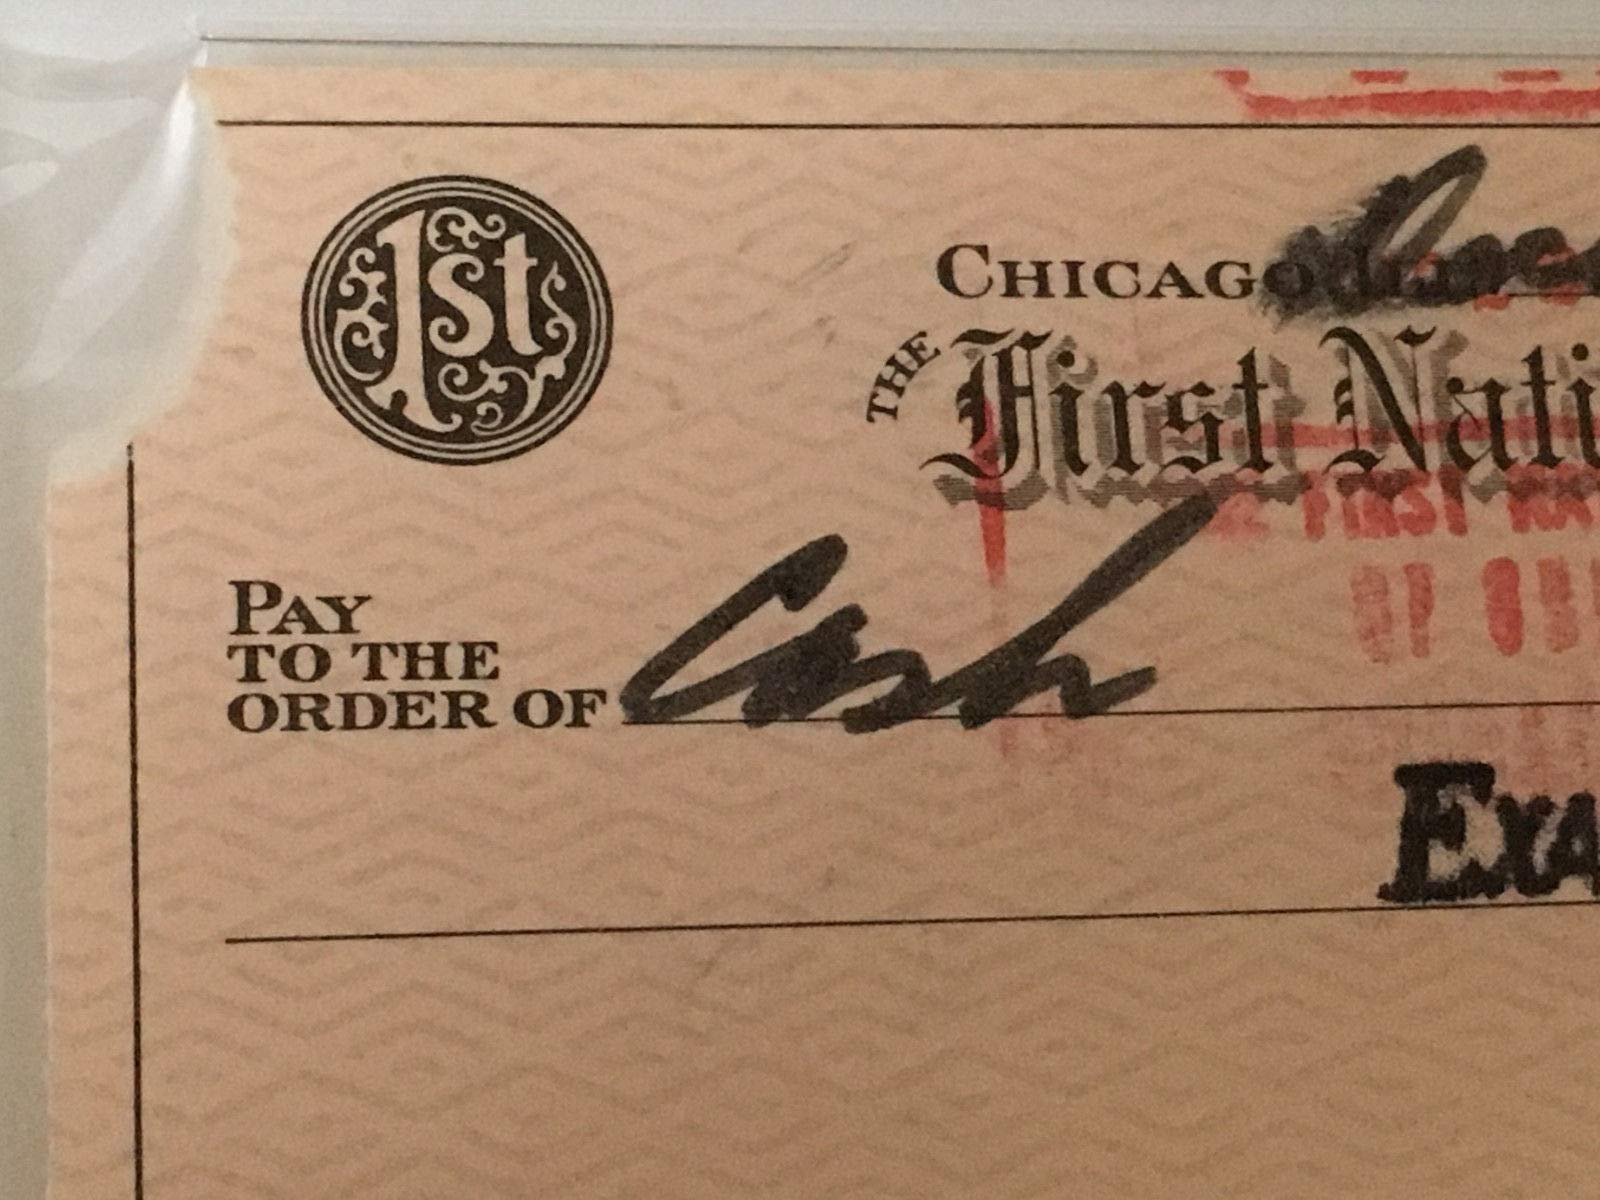 Will Harridge Autographed Signed Bank Check PSA/DNA Authentic Encapsulated Hof